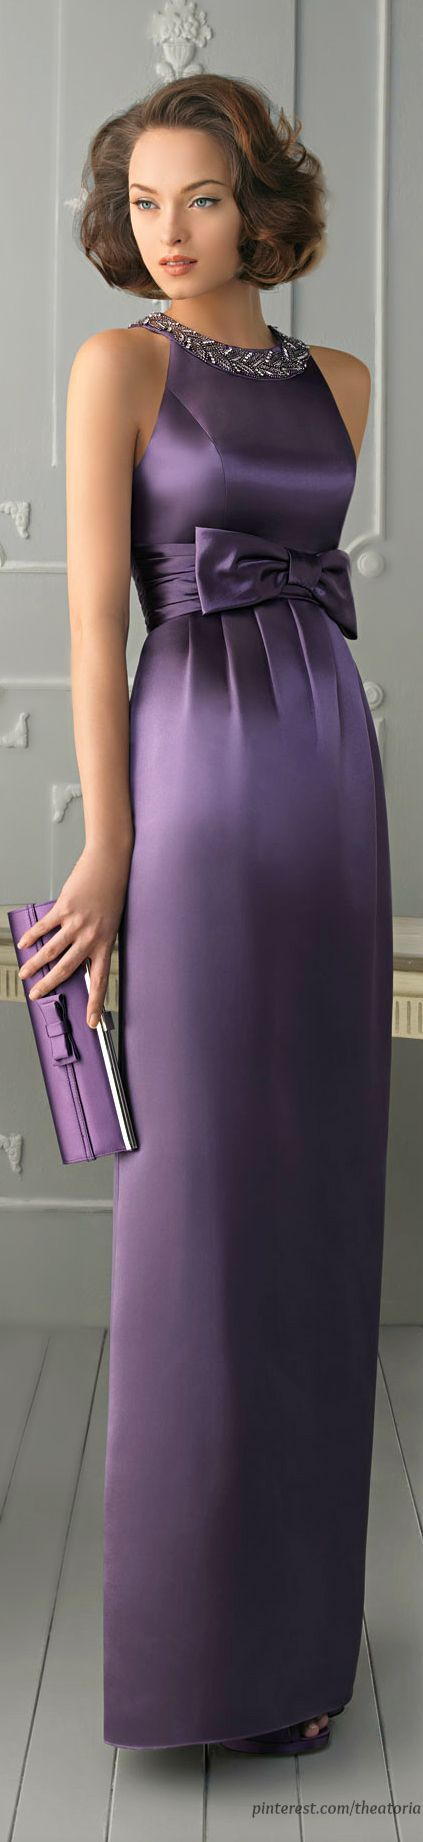 SATIN JEWEL A-LINE LONG EVENING DRESS – wow..so elegant ! and the color is stunning … Color me Purple for Epilepsy Awareness in November